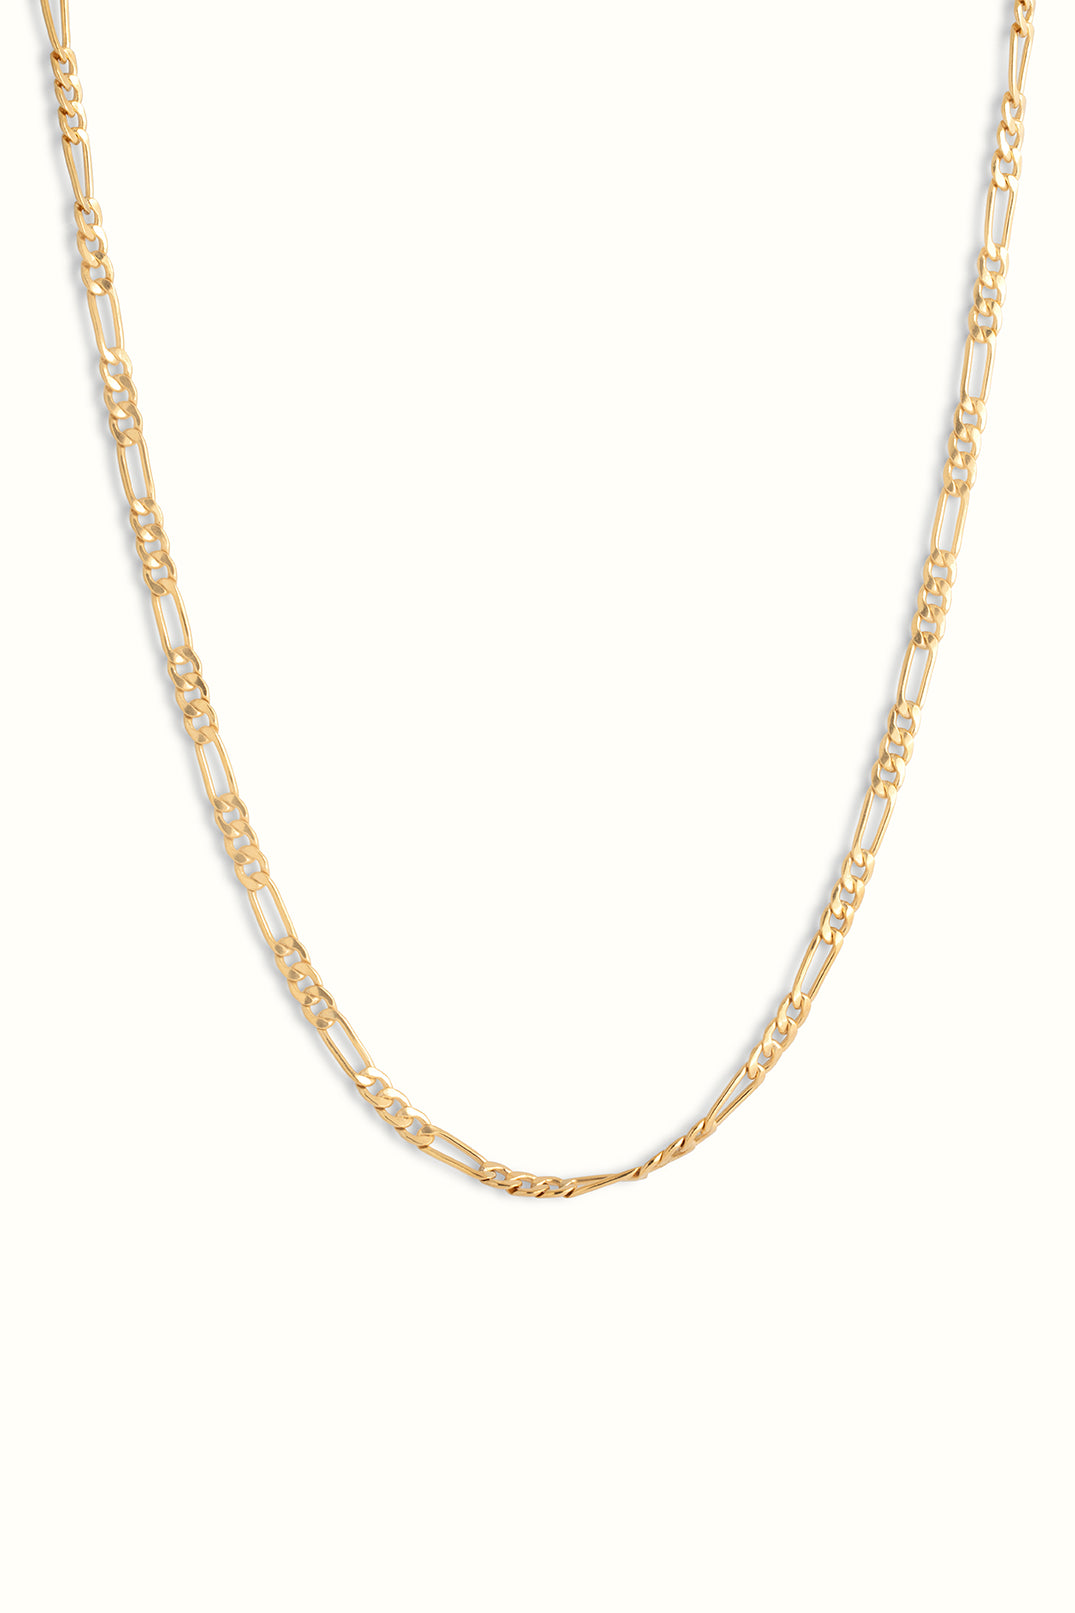 gold filled chunky figaro chain necklace in front of a white background